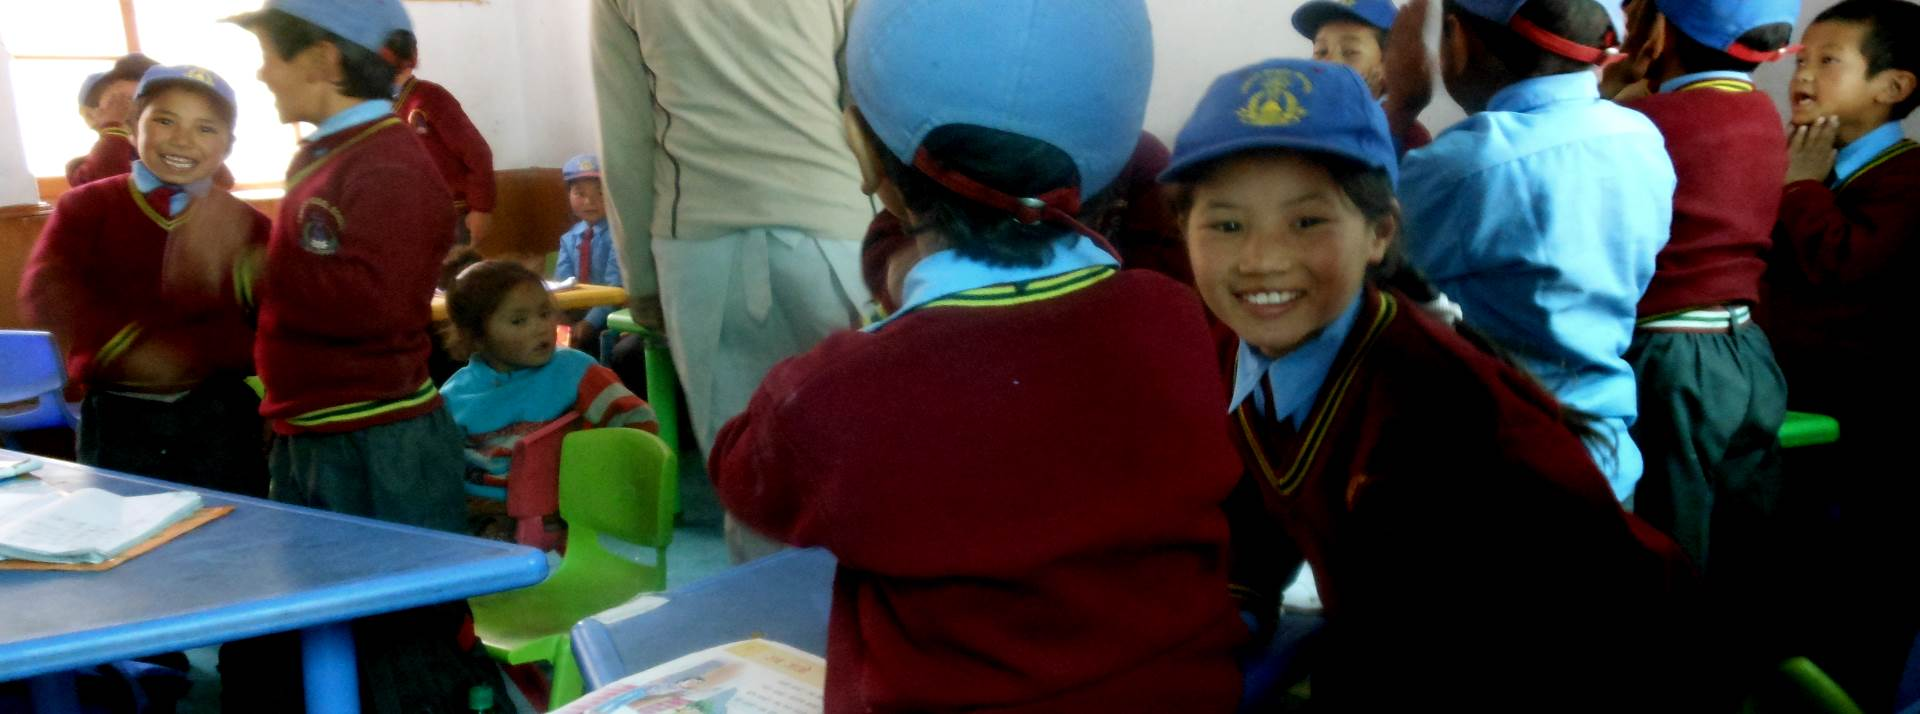 100% of funds raised are used directly in the education of children in Ladakh